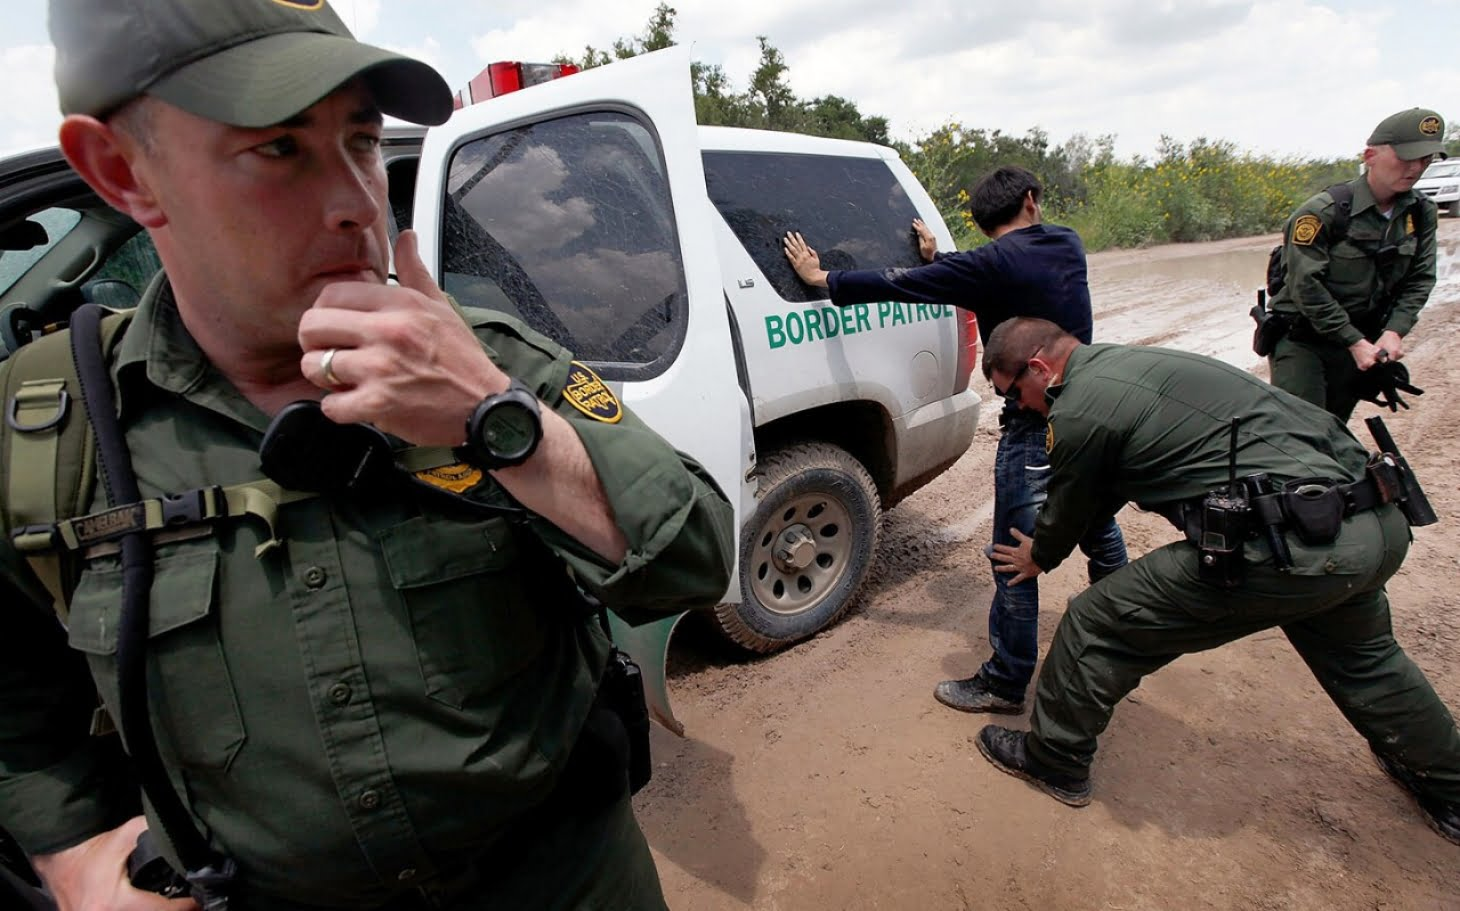 HRW denounces that US border agents deny entry to Mexican asylum seekers